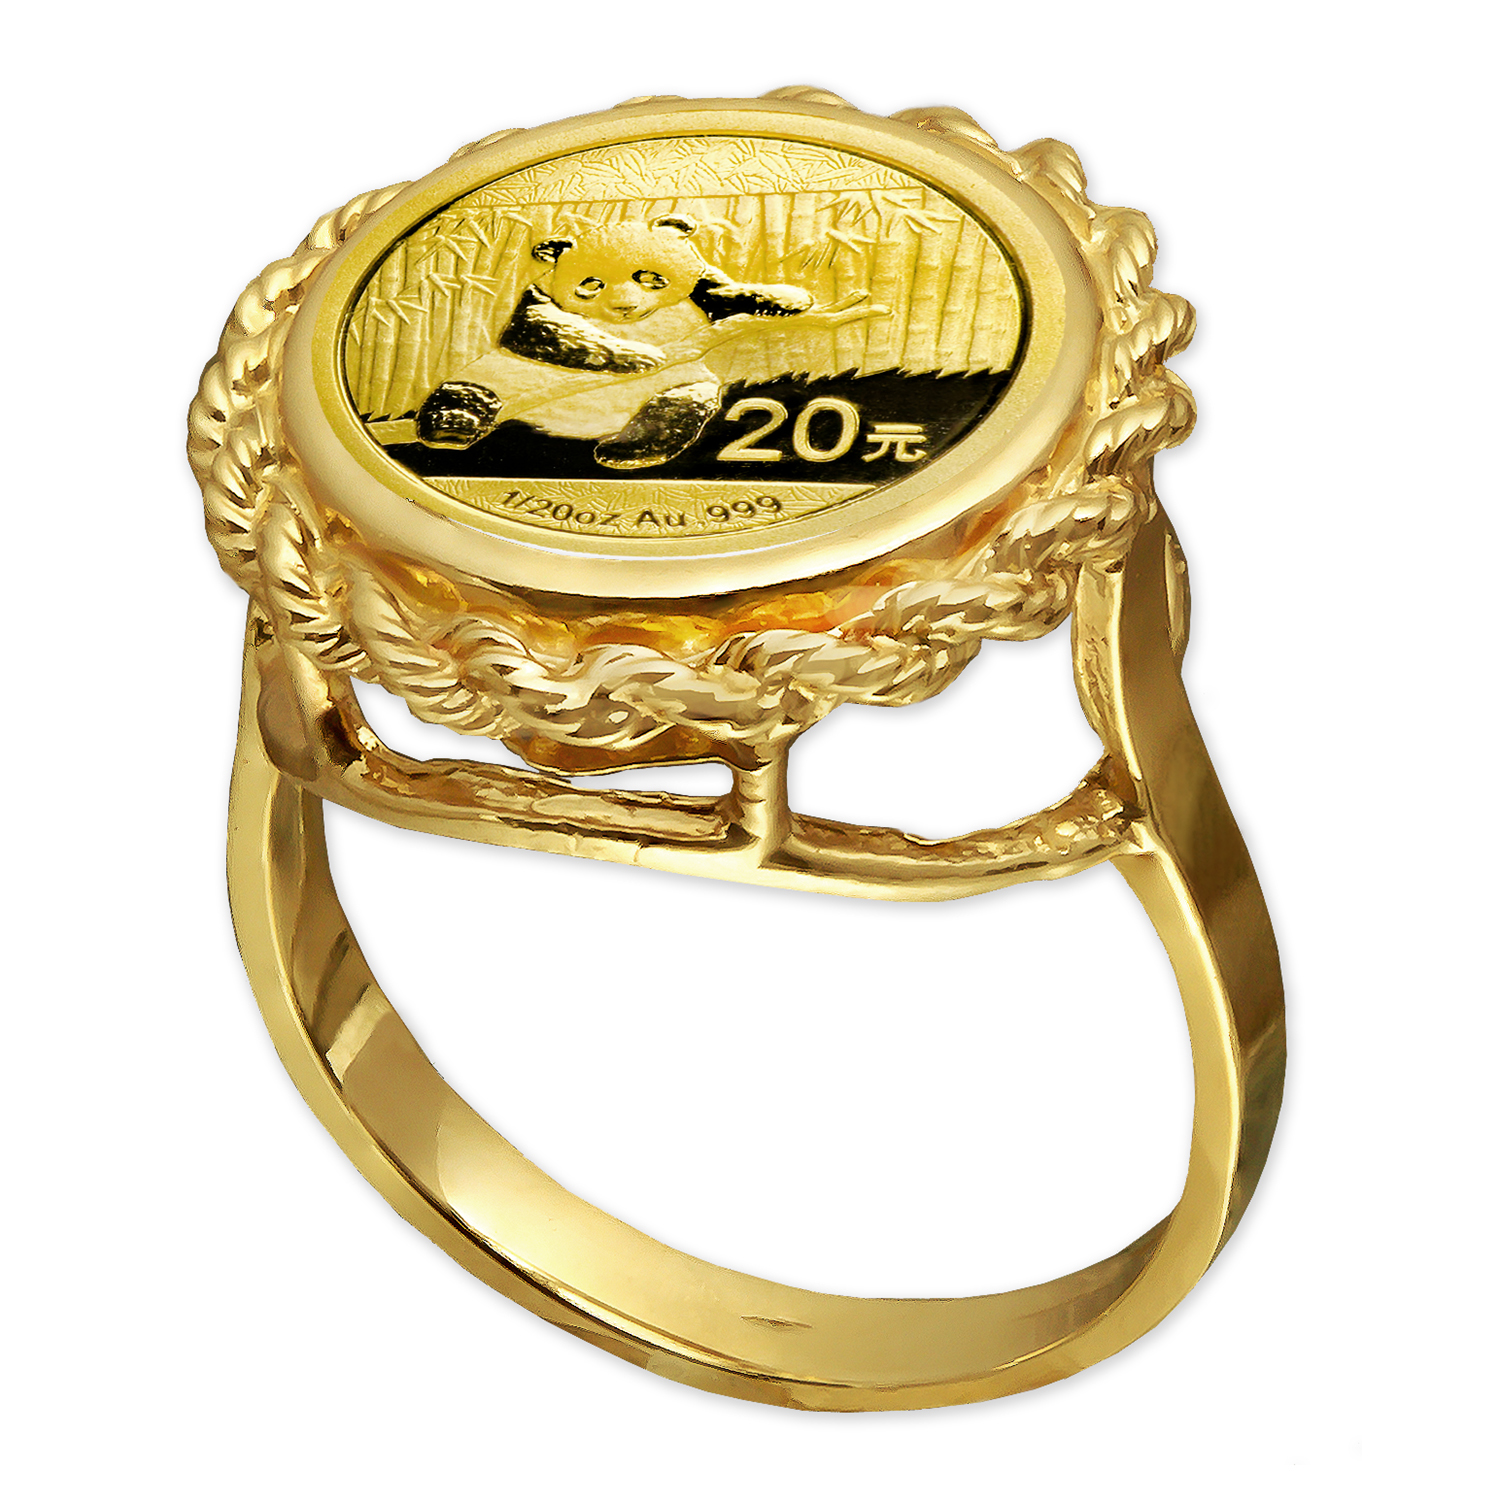 2014 1/20 oz Gold Panda Ring (Rope-Prong)